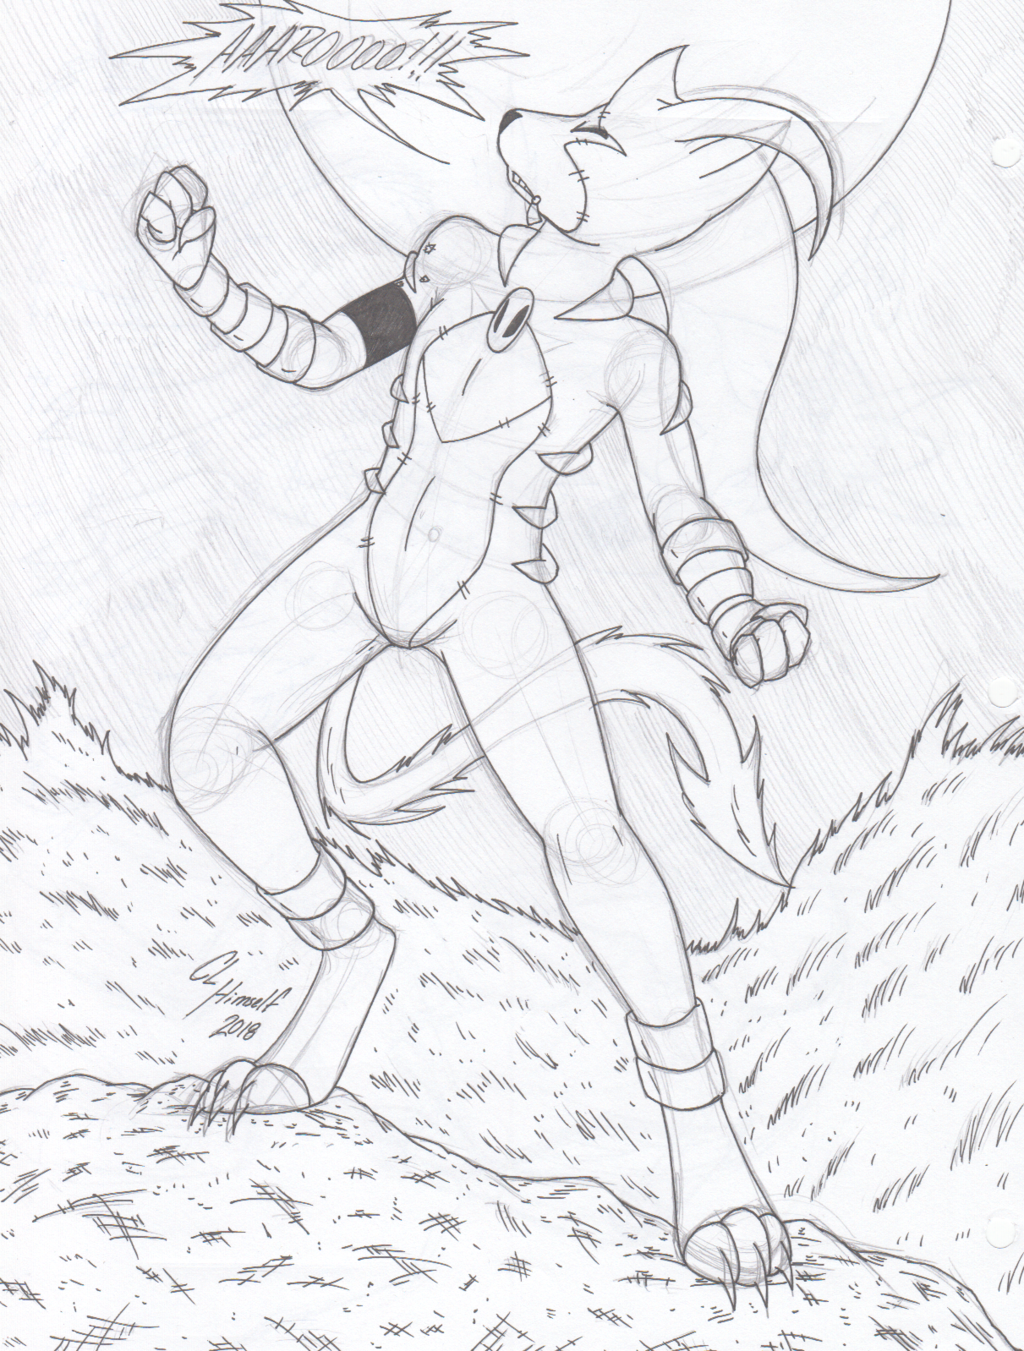 Deceased Blaziken Redux - Howling at the Moon (Inks)